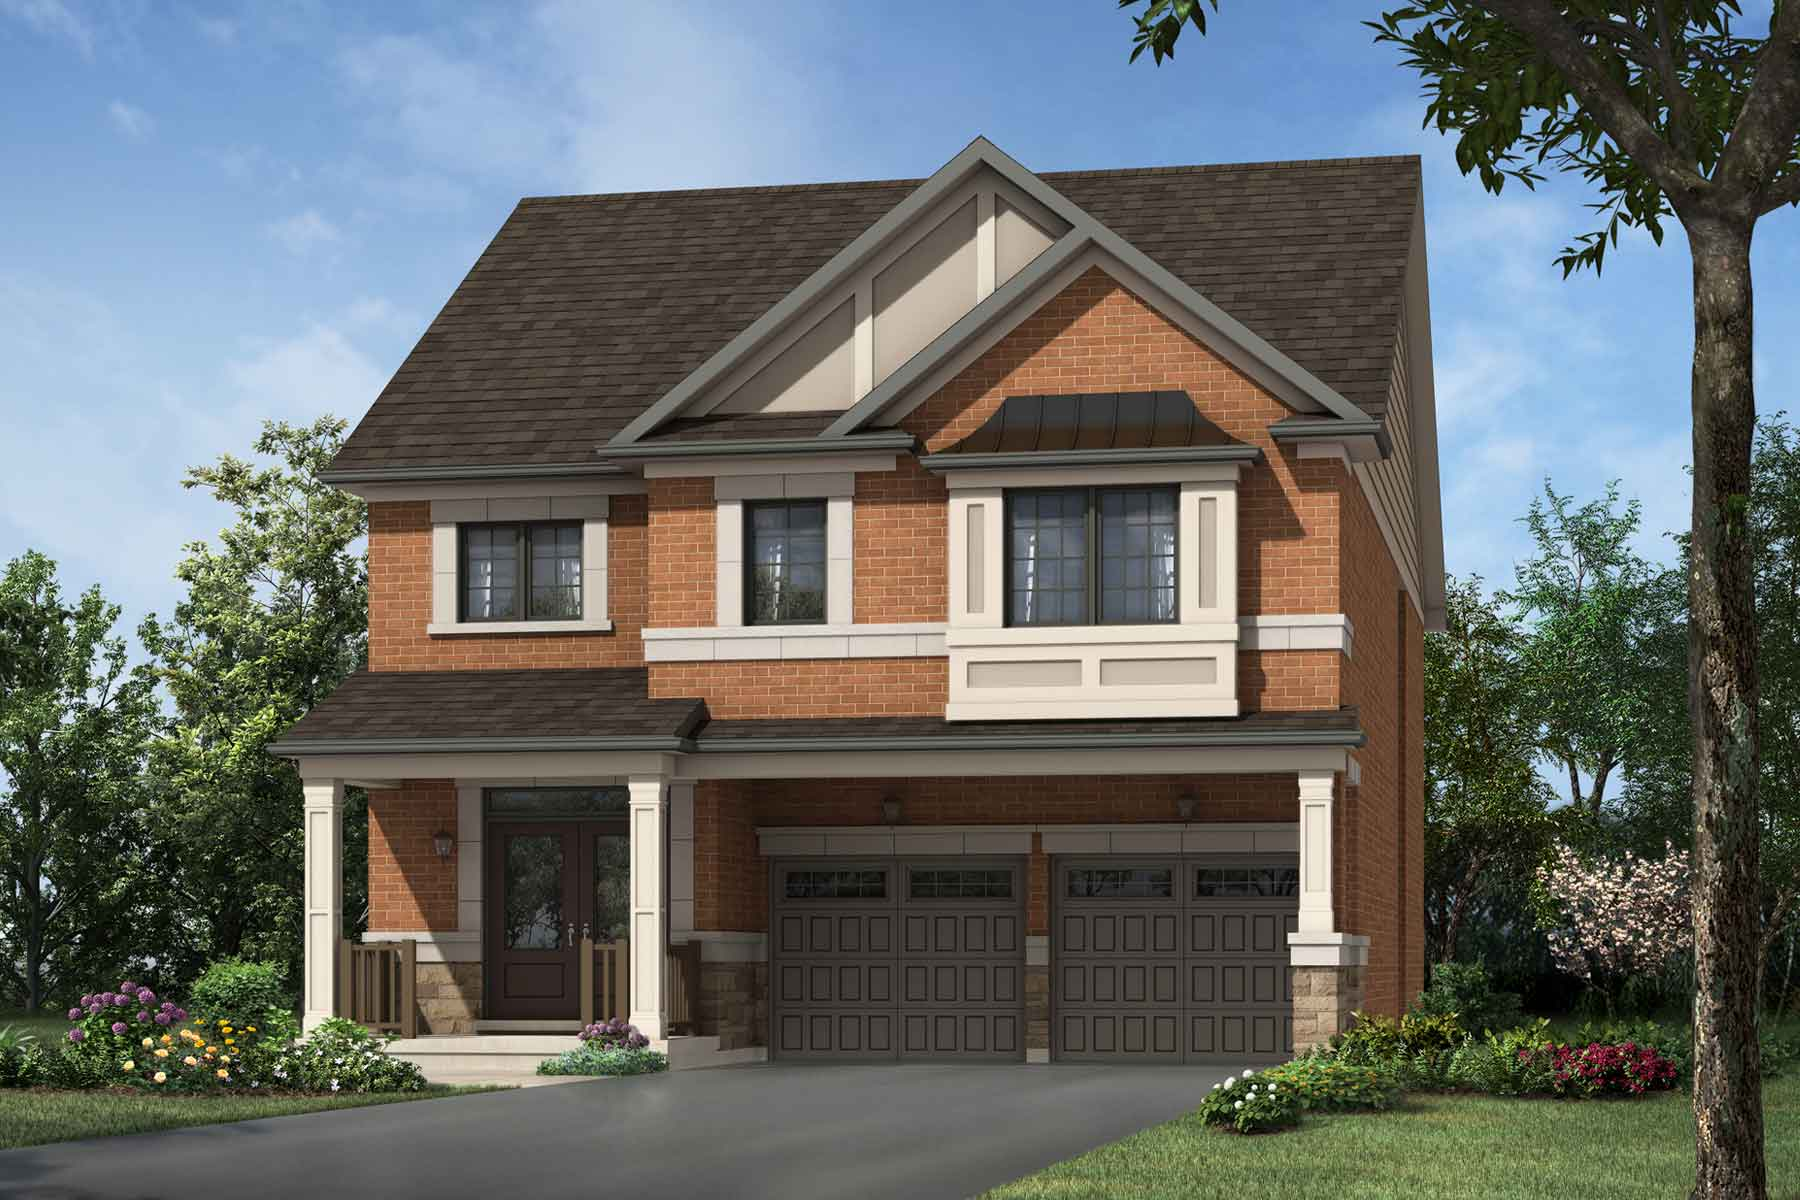 Valley View Plan traditional_seatonwhitevale_valleyview at Seaton Whitevale in Pickering Ontario by Mattamy Homes